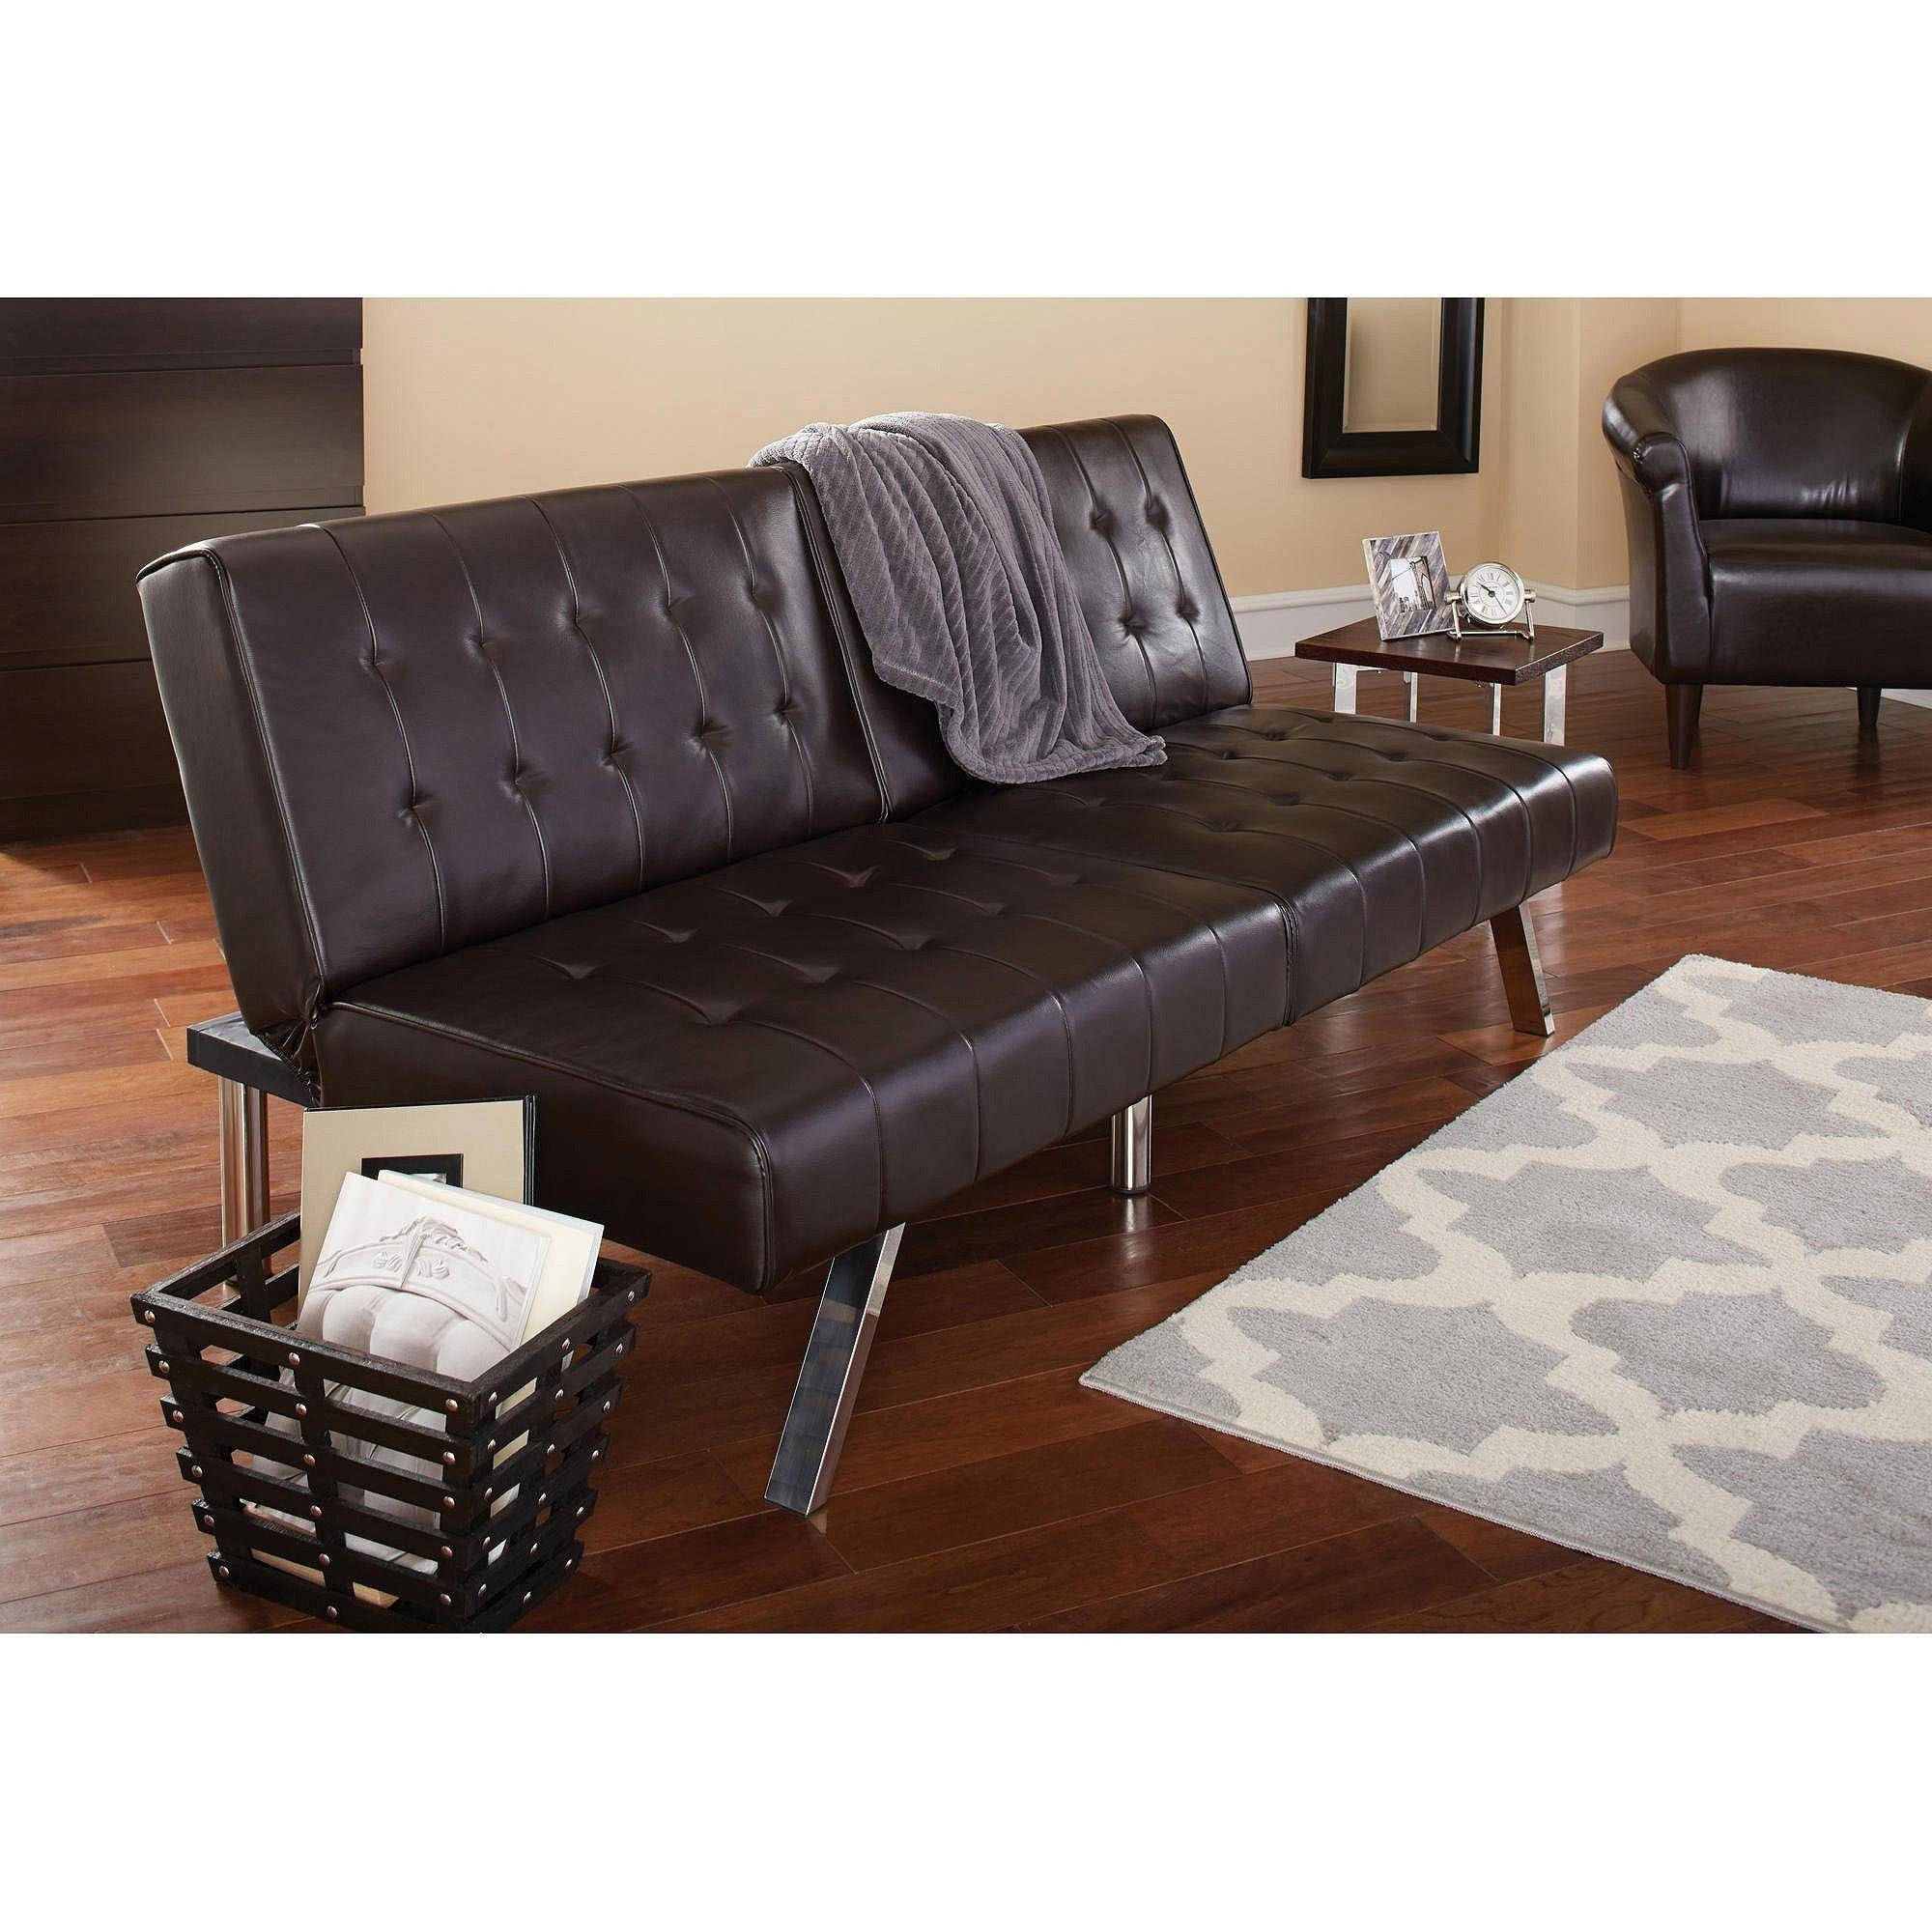 20 Best Mainstay Sofas   Sofa Ideas In Mainstay Sofas (View 3 of 15)